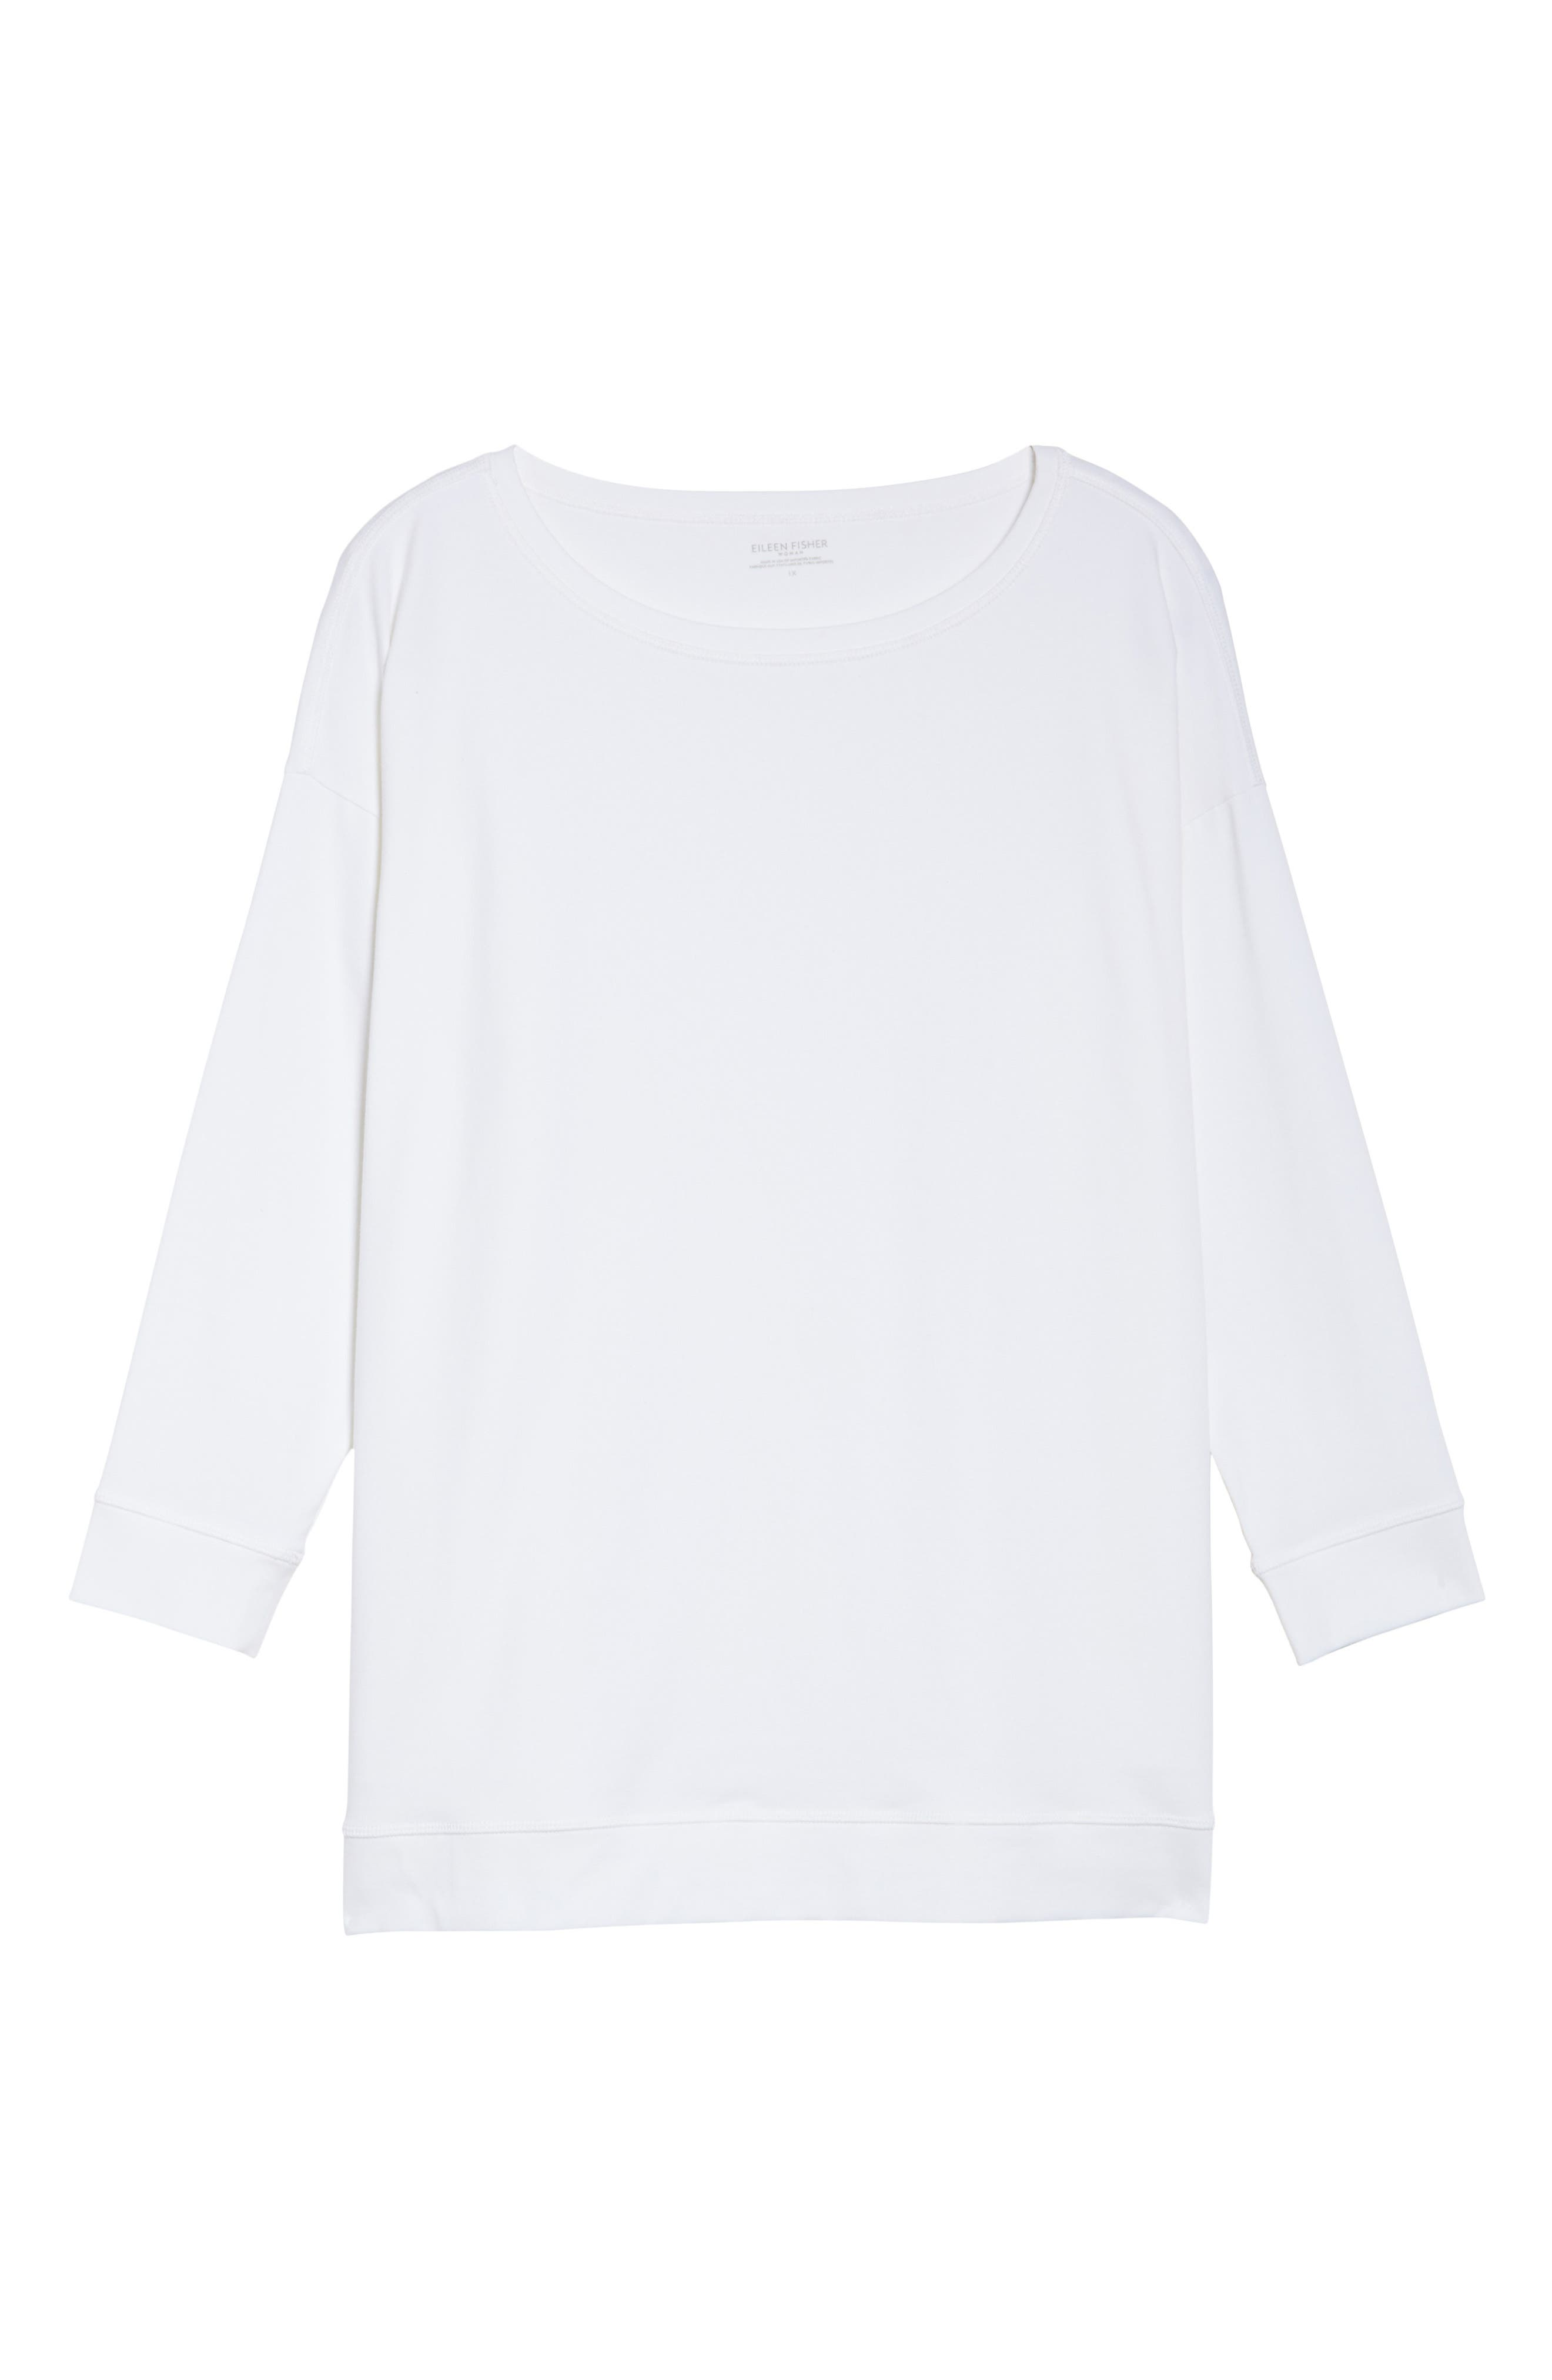 Jewel Neck Organic Stretch Cotton Tee,                             Alternate thumbnail 6, color,                             100